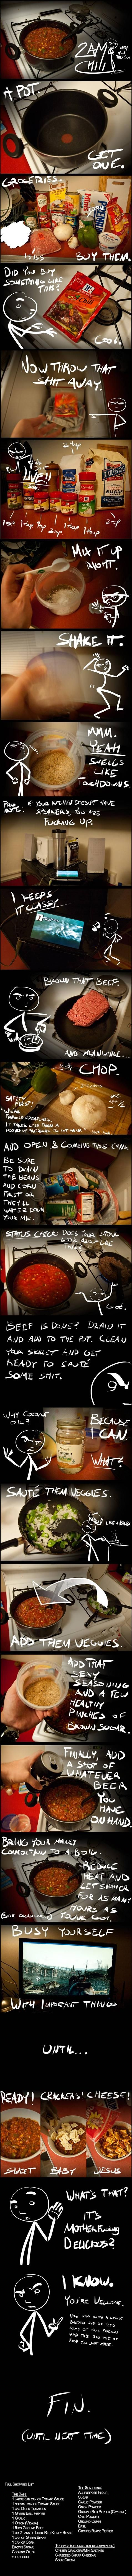 CHILI!!! It should go into my recipes but this is just too funny!